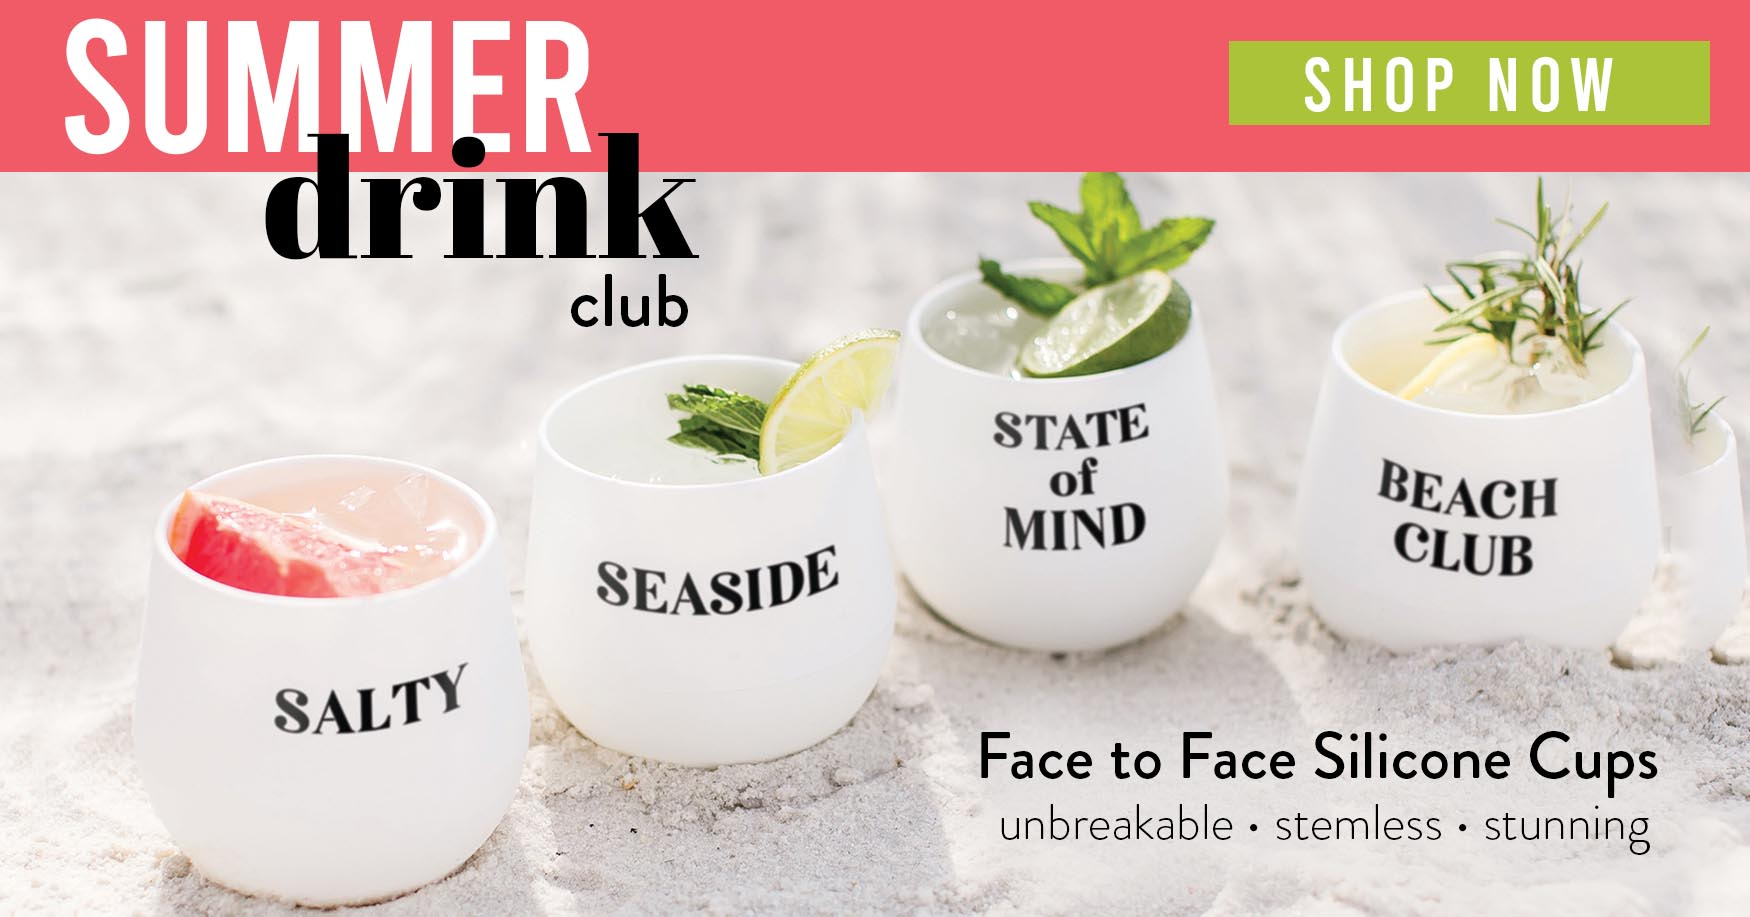 Summer drink club. Face to Face Silicone Cups. Unbreakable, Stemless, Stunning